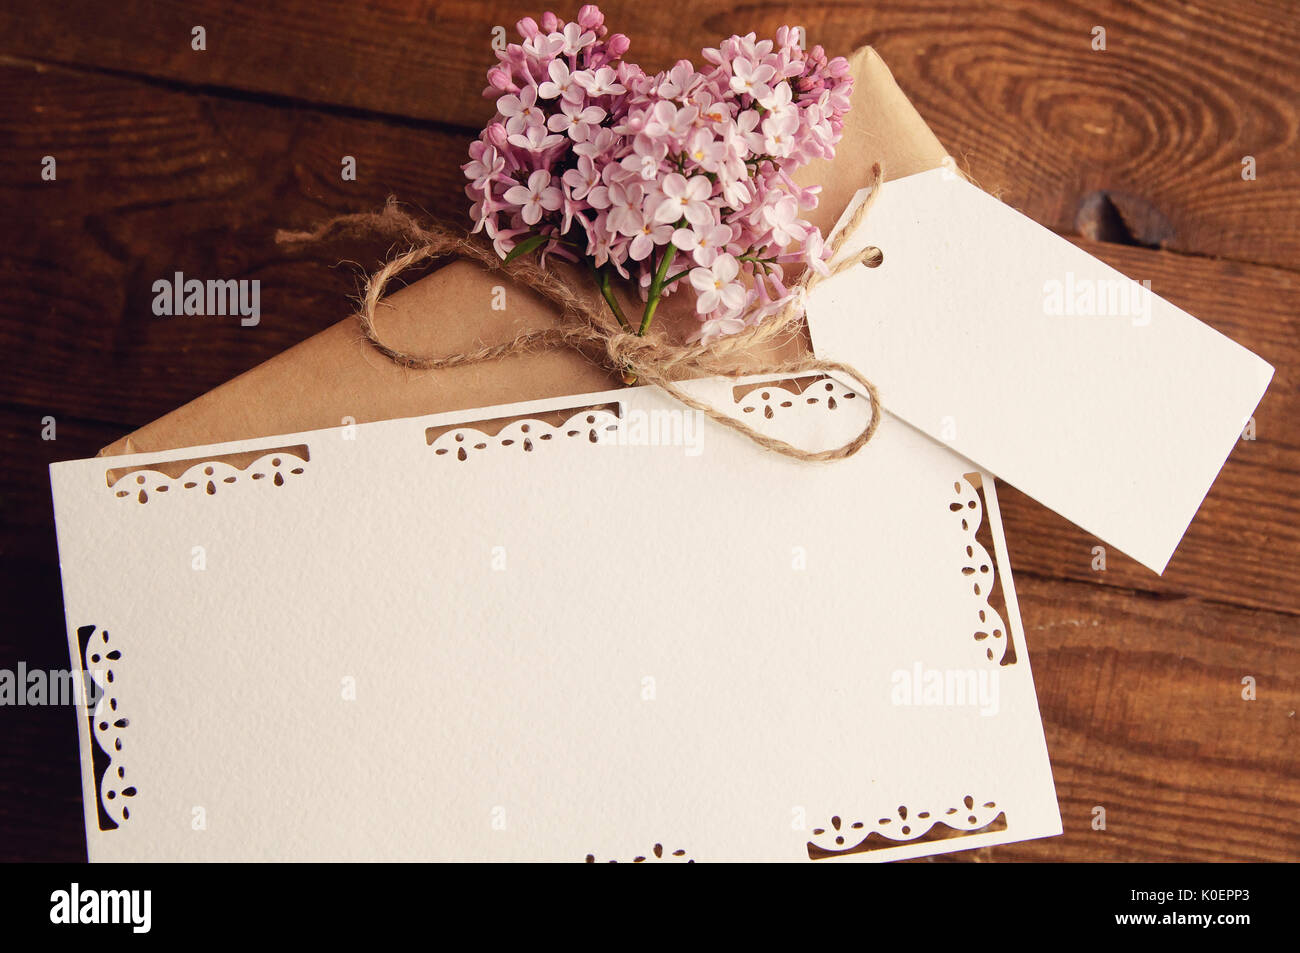 Gift wrapped with kraft paper on a wooden table, tied with a rope, with a bouquet of pink lilac, attached greeting cards - Stock Image